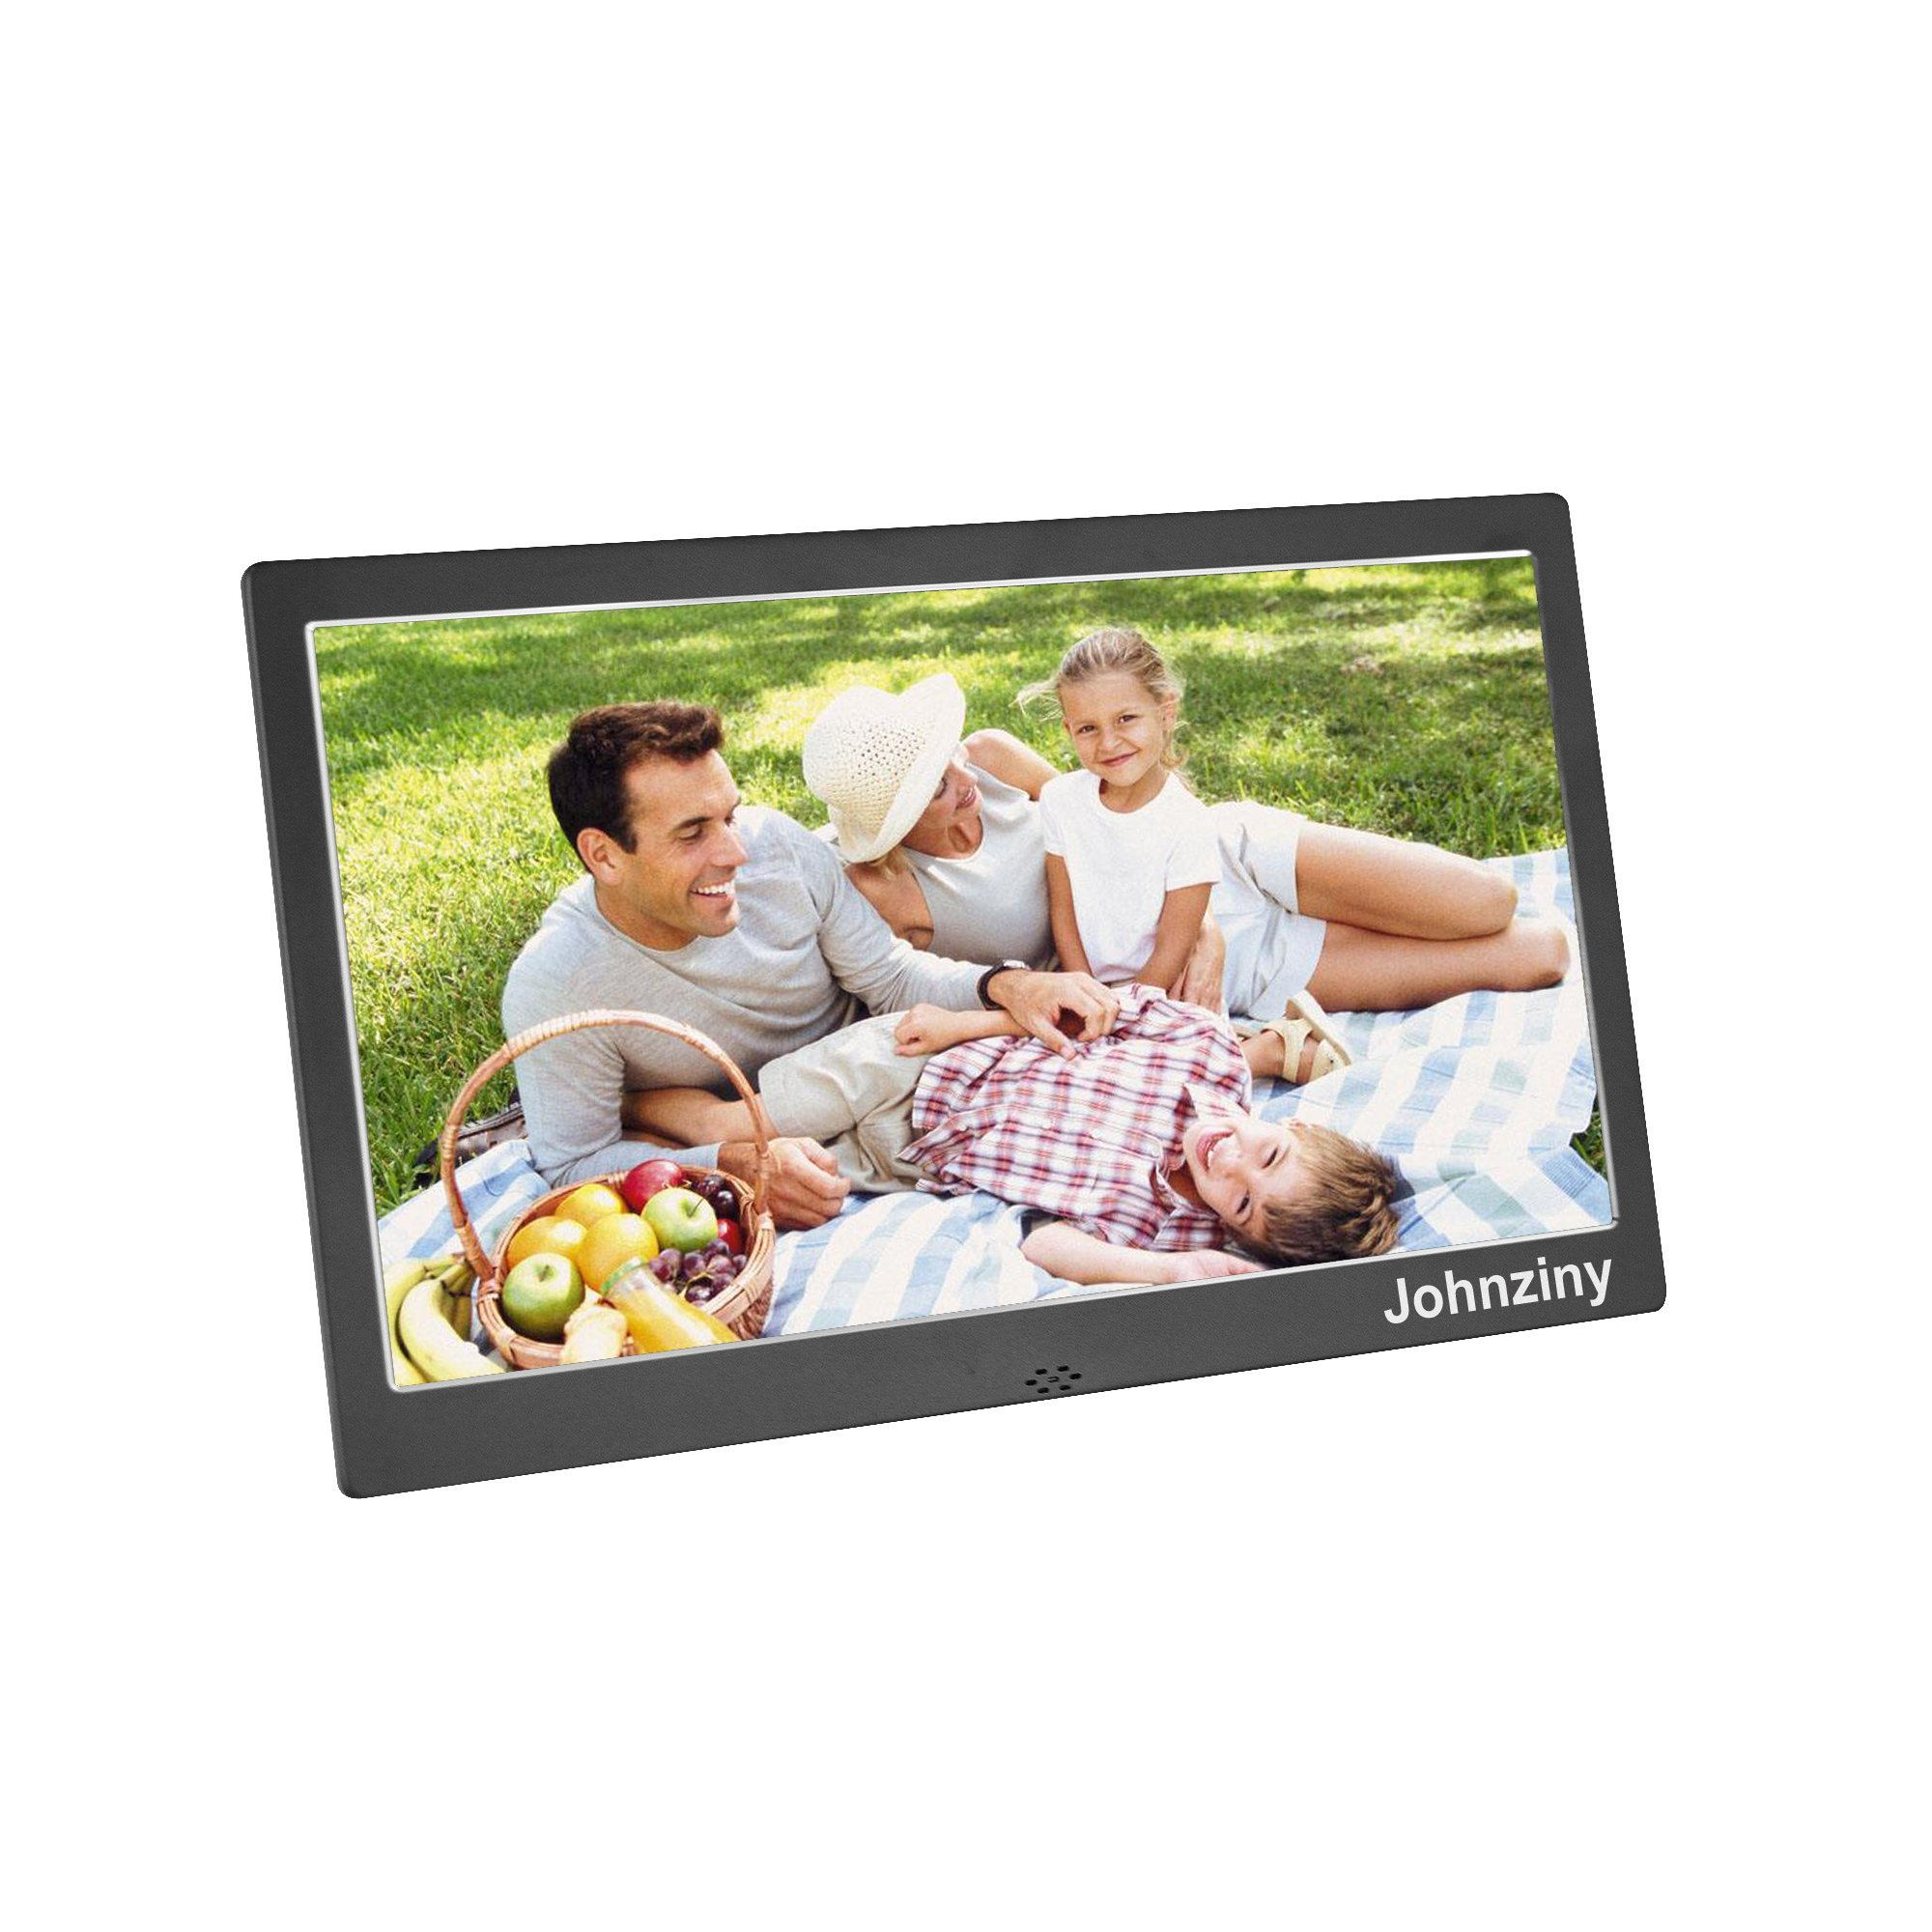 Digital Picture Frame 10 inch Metal Digital Photo Frame 1024x600 High Resolution Photo/Music/Video Player,with Remote Control/Calendar/12 Languages,USB/SD/MMC/MS Card Port by Johnziny (Image #1)